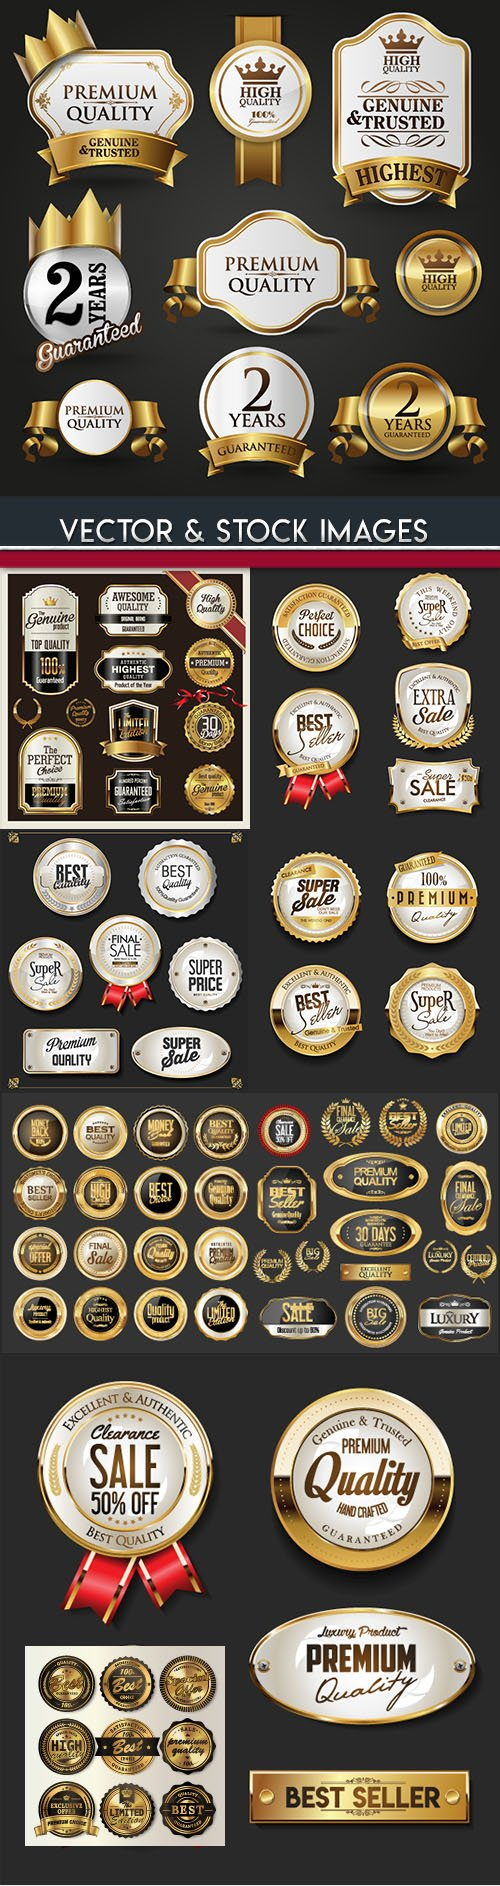 Premium quality badges and labels collection 30